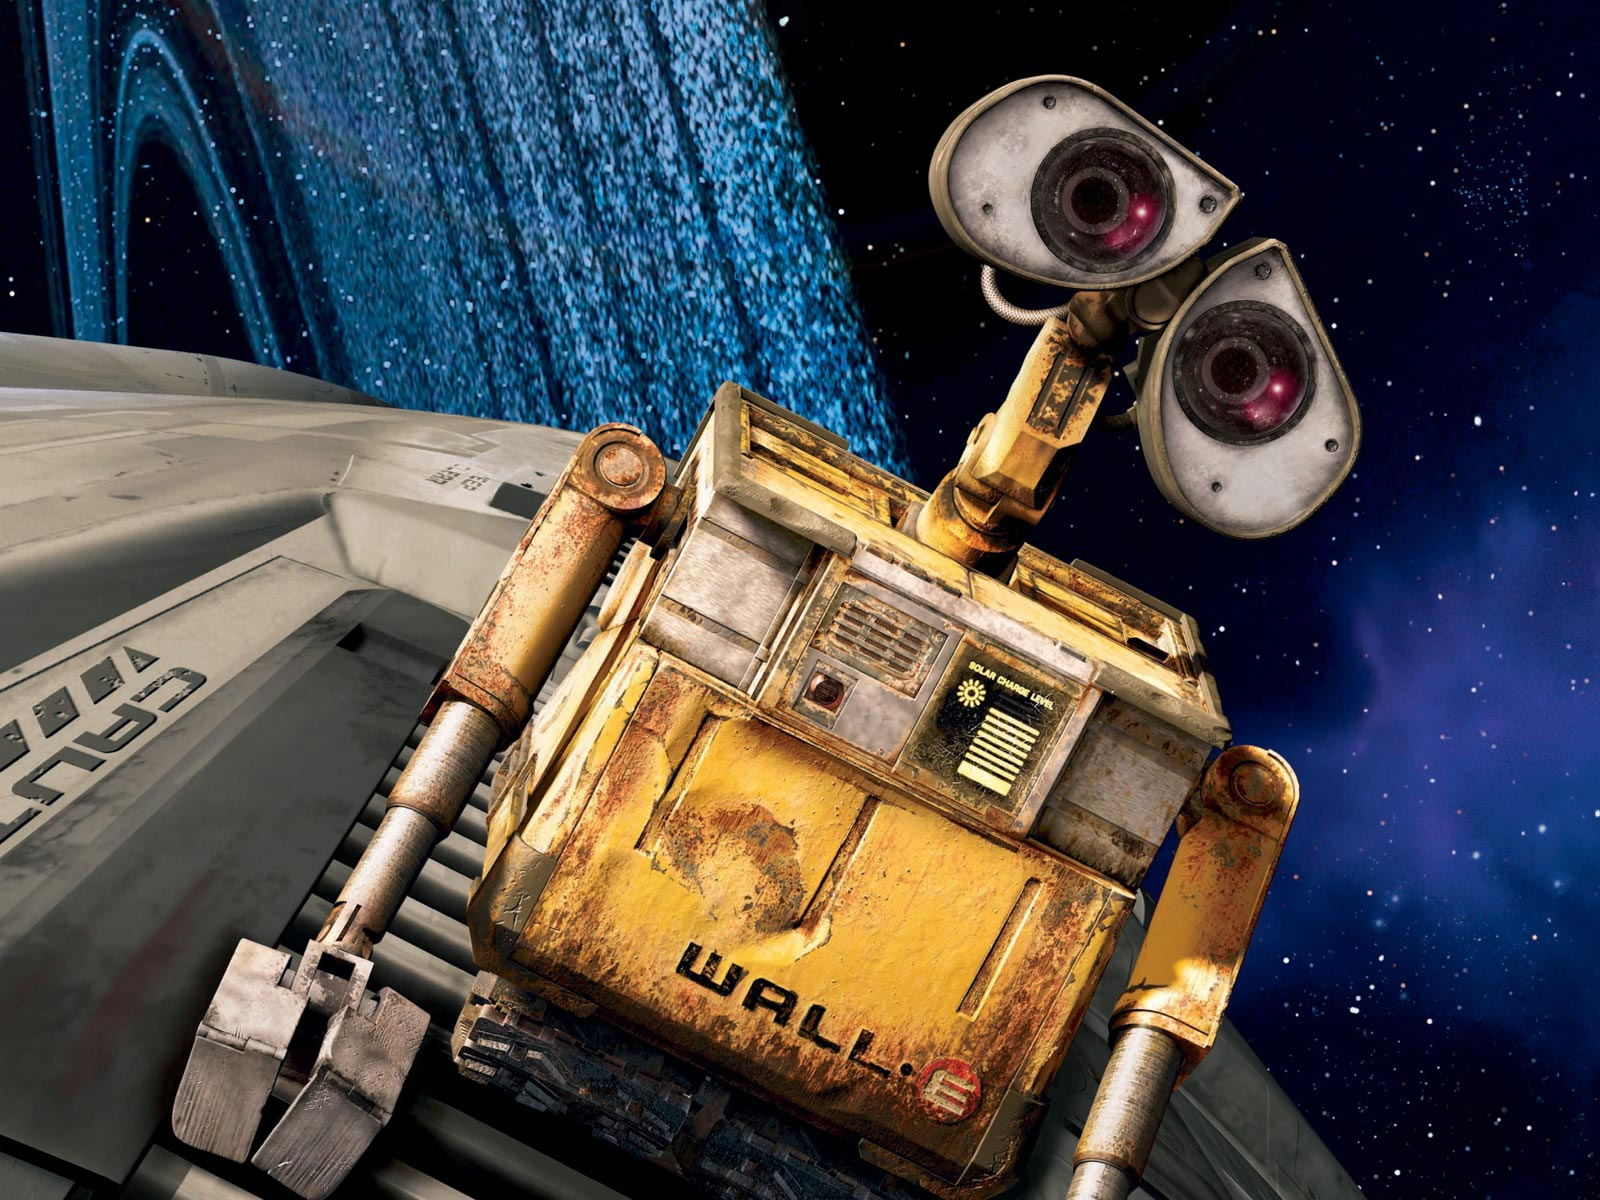 Walle 9421 1600x1200px